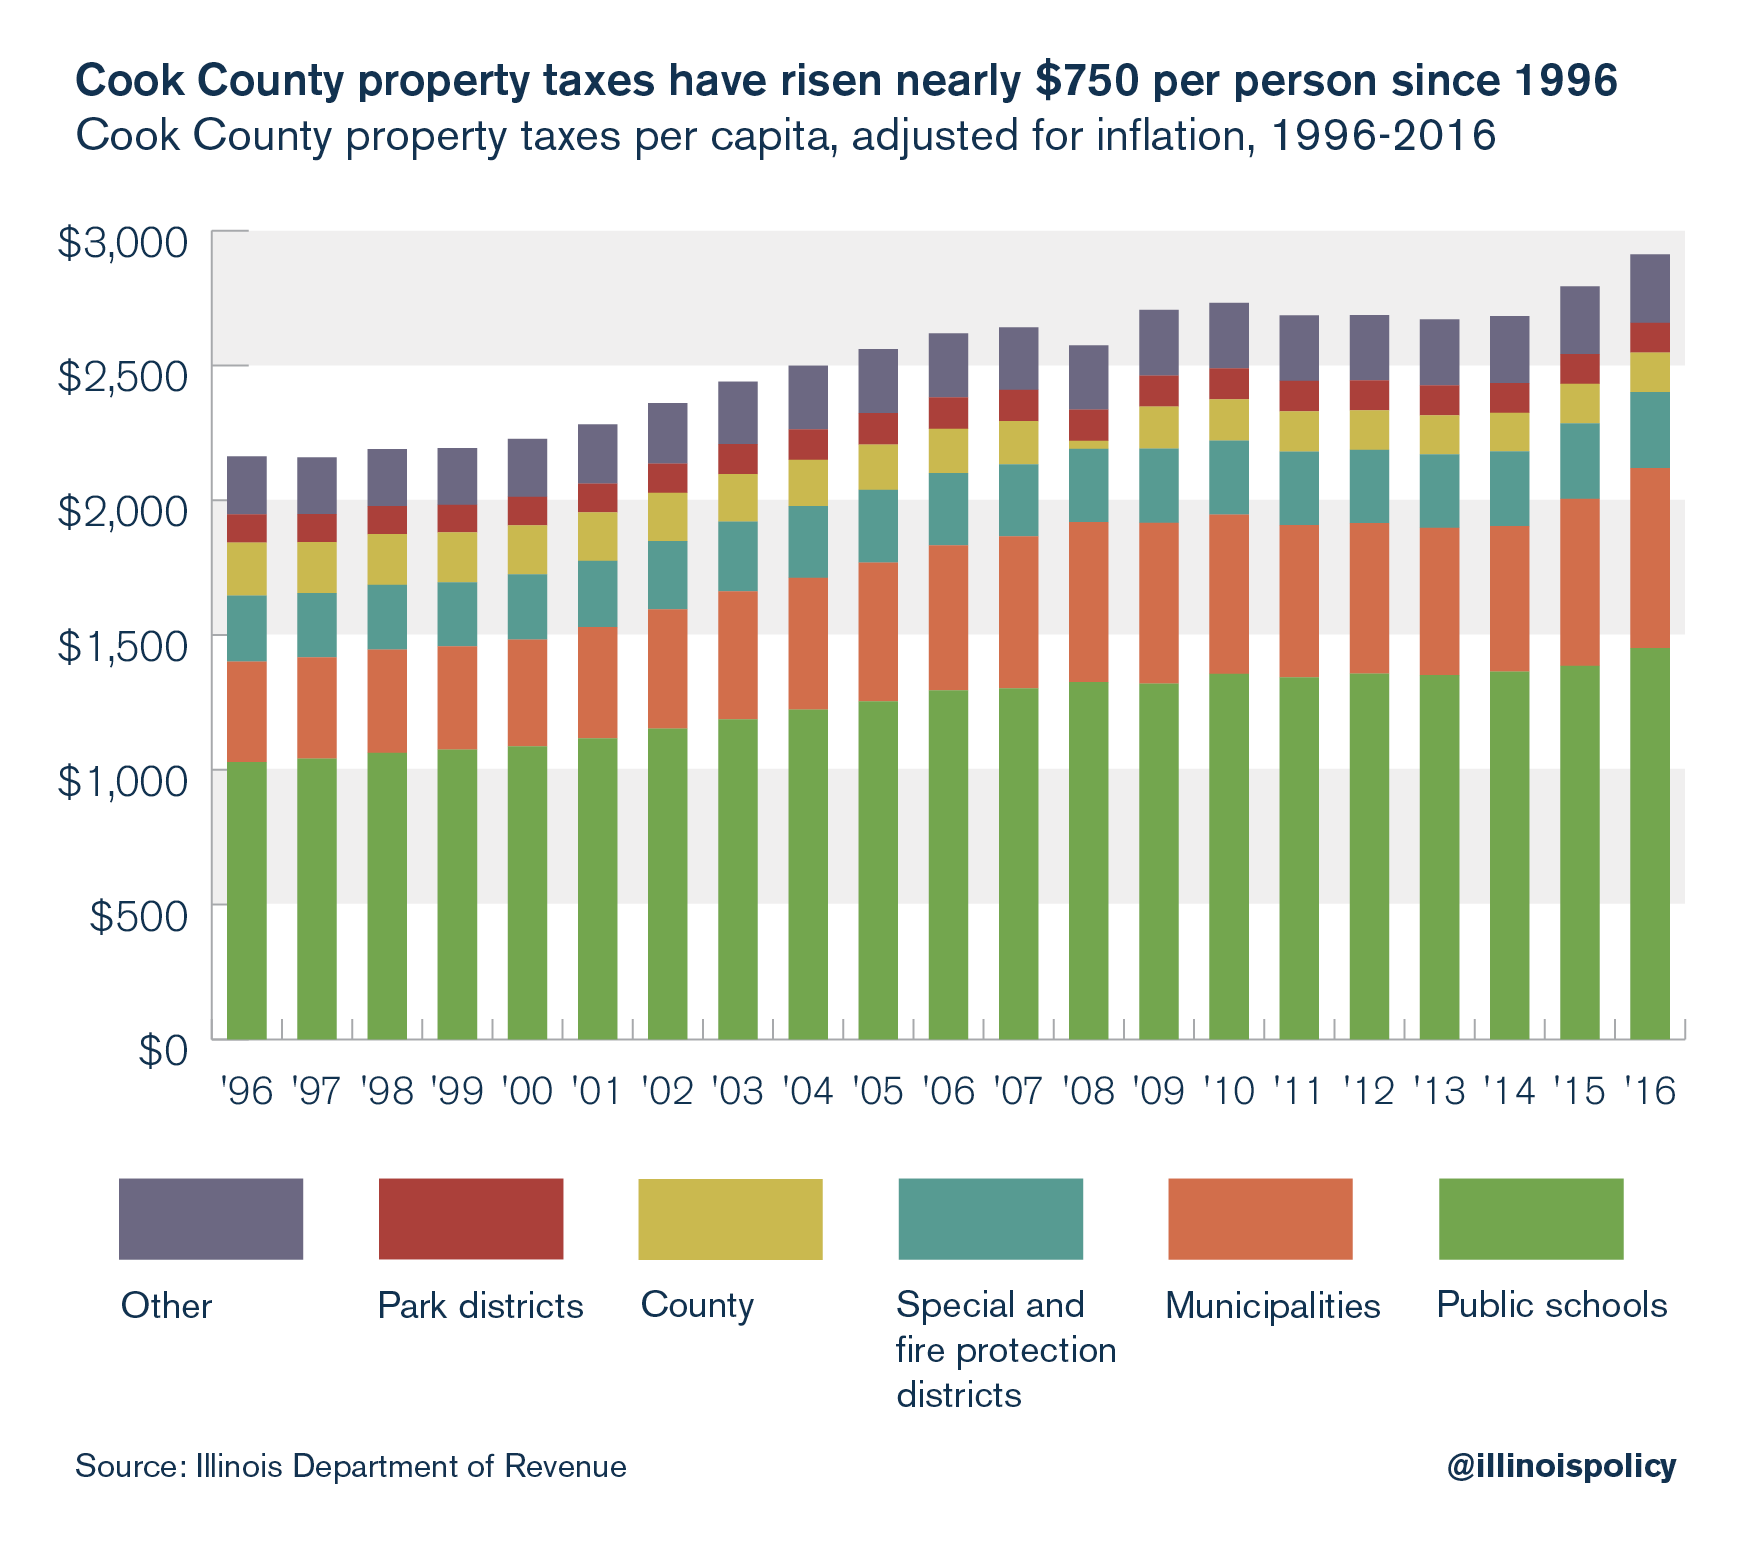 Cook County property taxes have risen nearly $750 per person since 1996